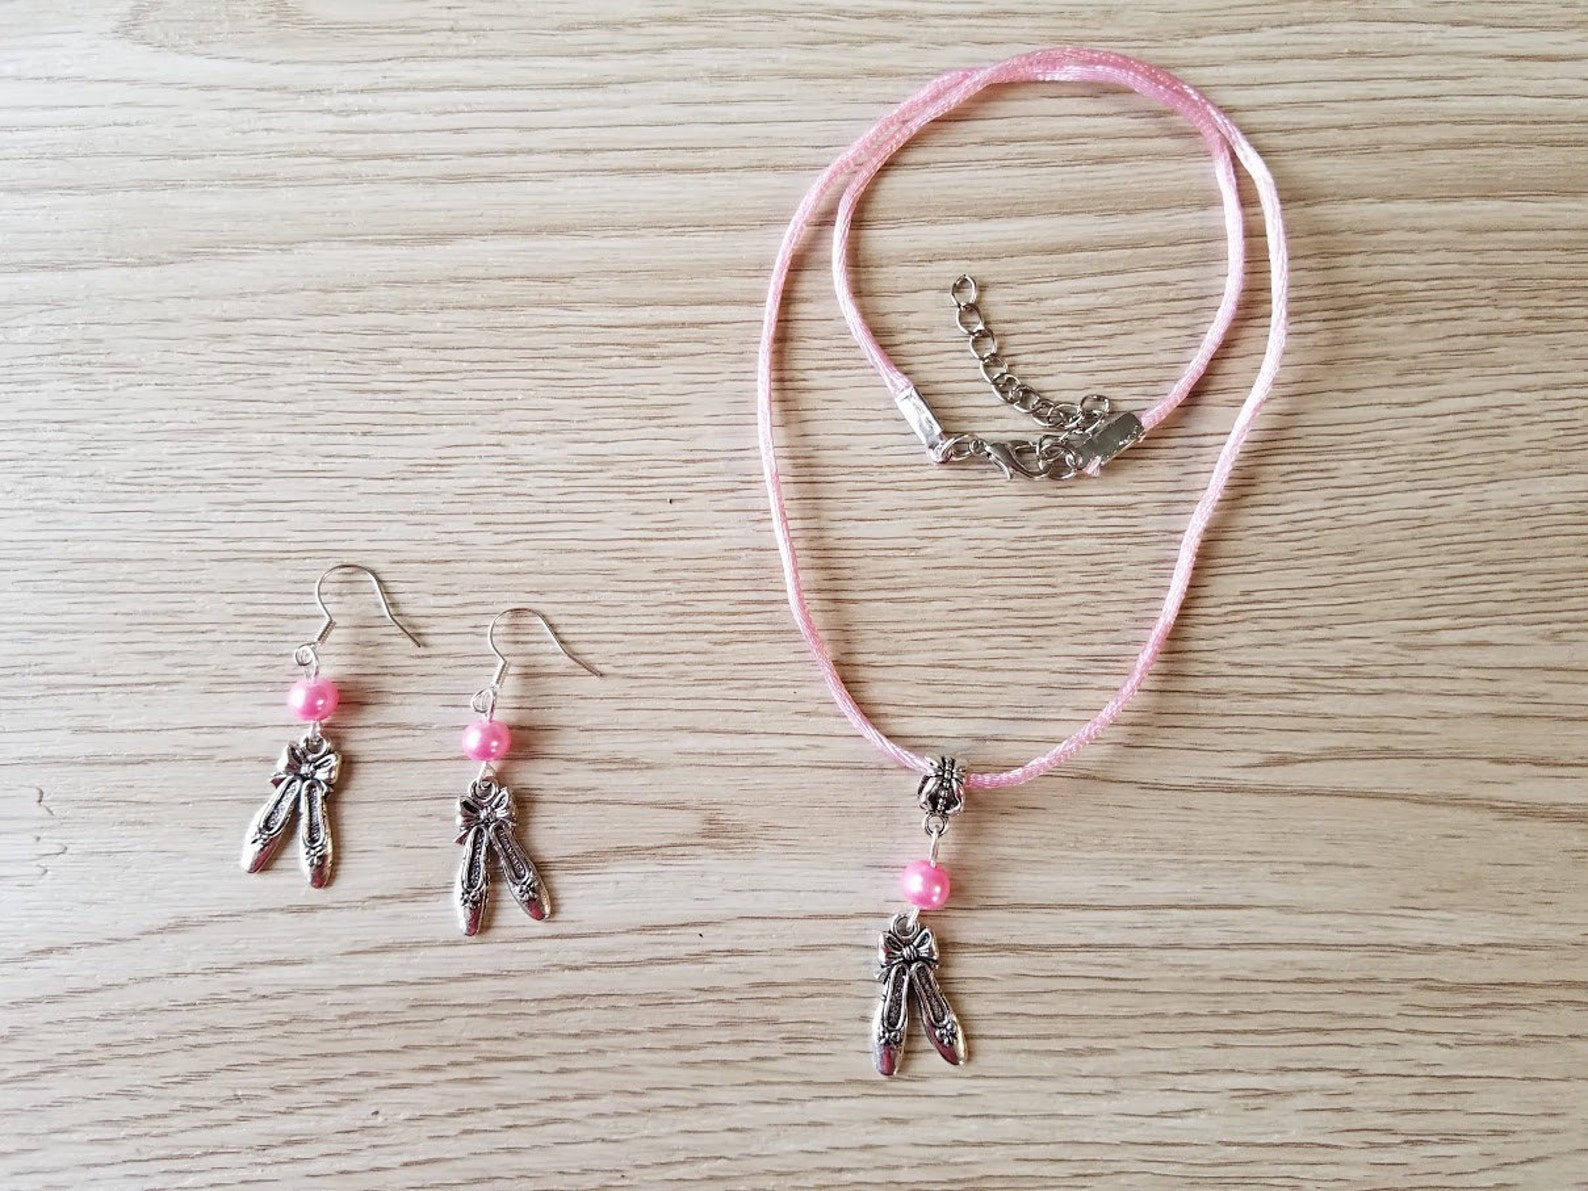 ballet jewelry. necklace and earrings set